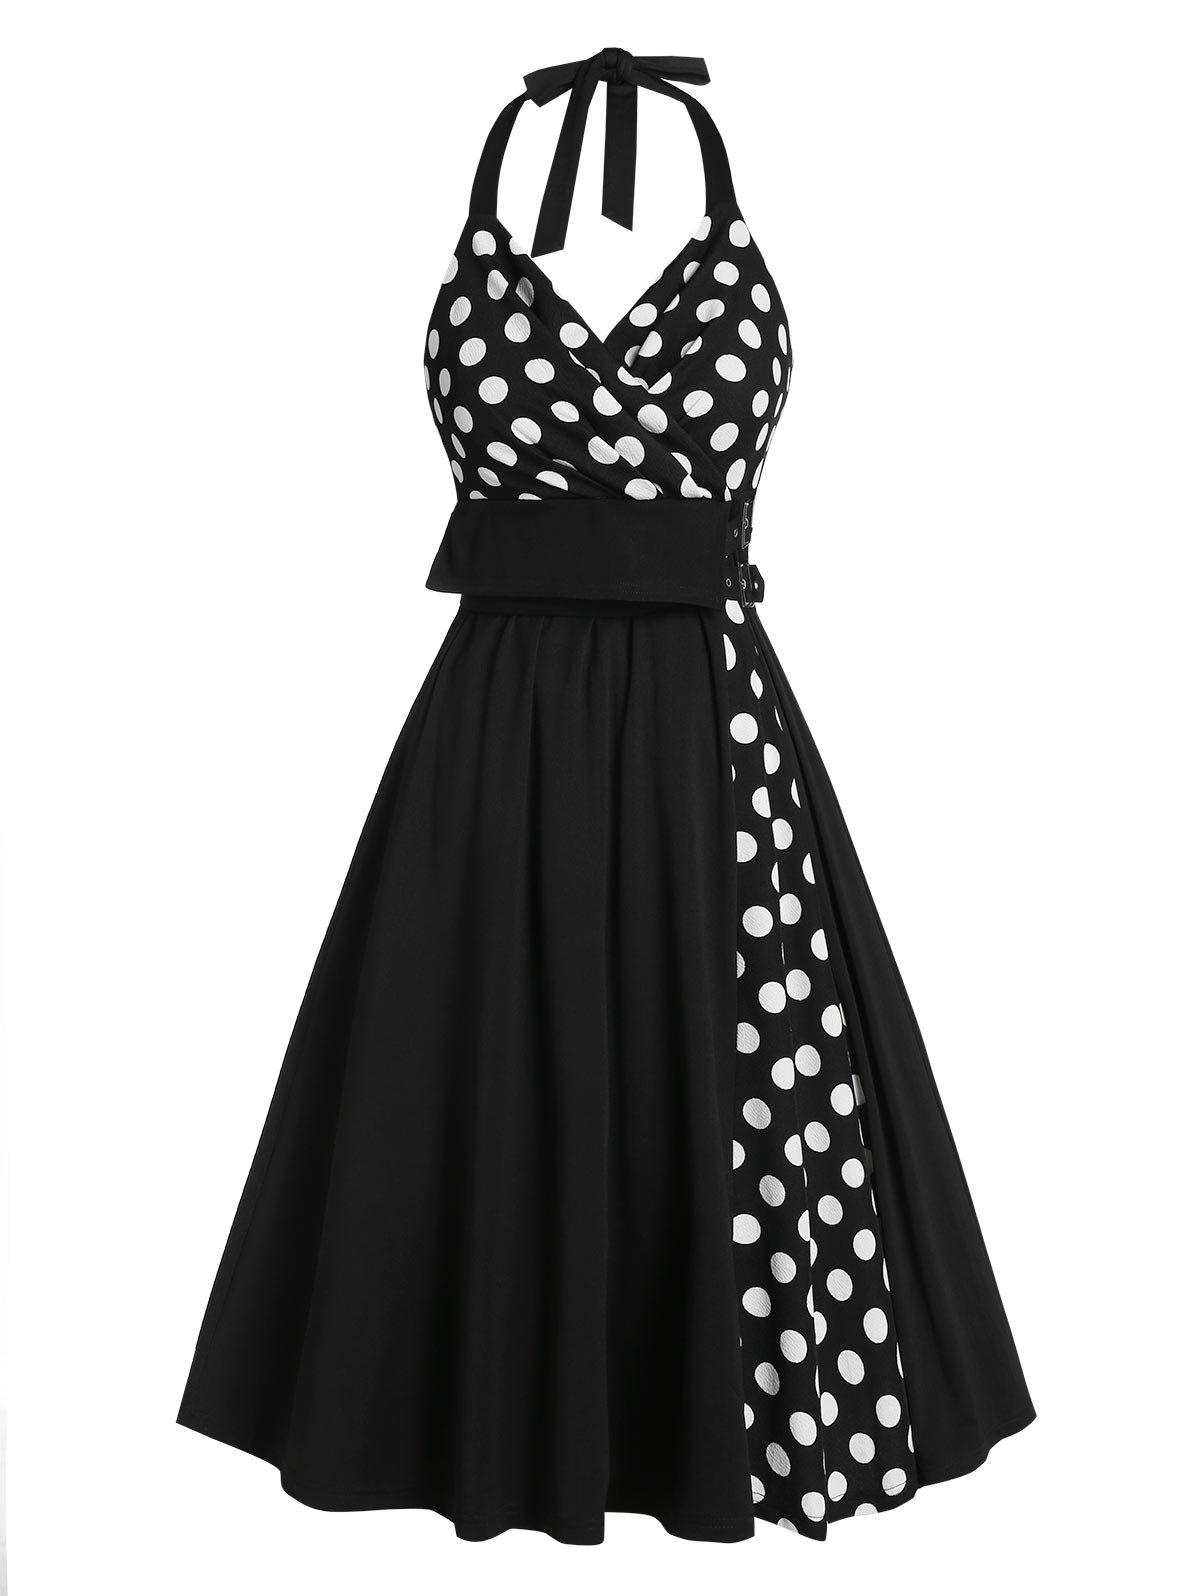 Fancy Polka Dot Print Halter Buckle Strap Vintage Dress